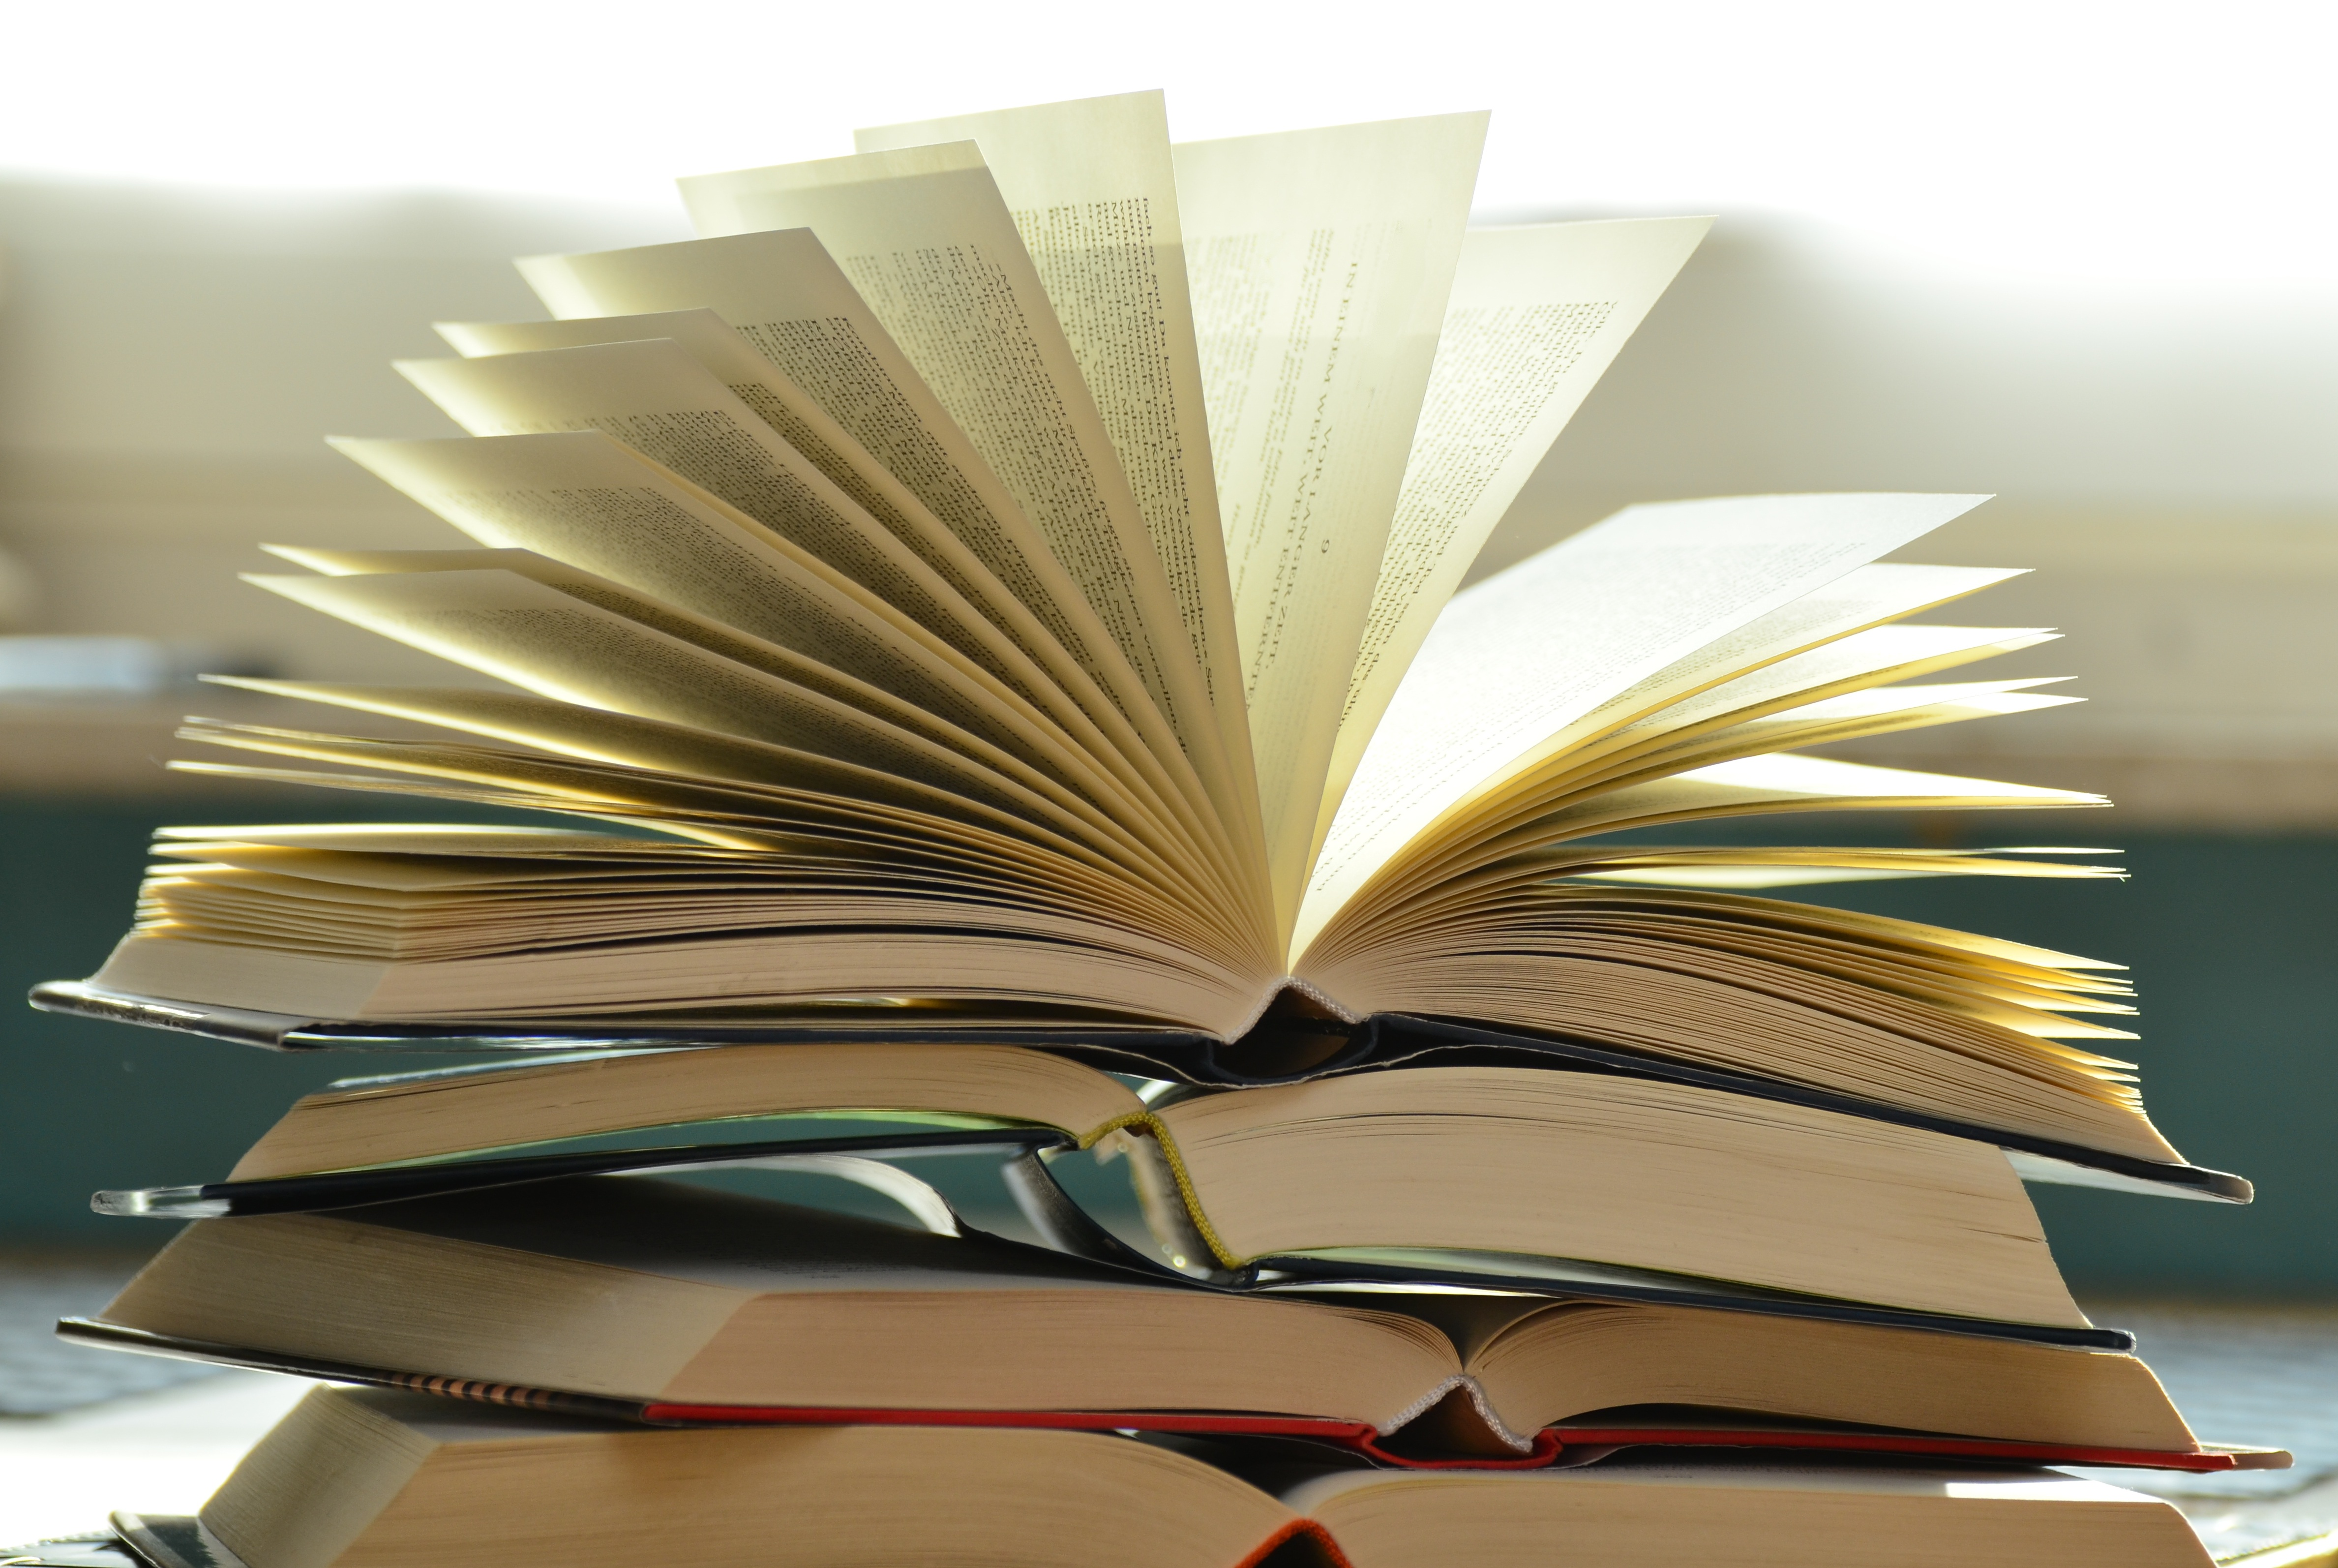 books book pages read literature 159866 - Book Pages